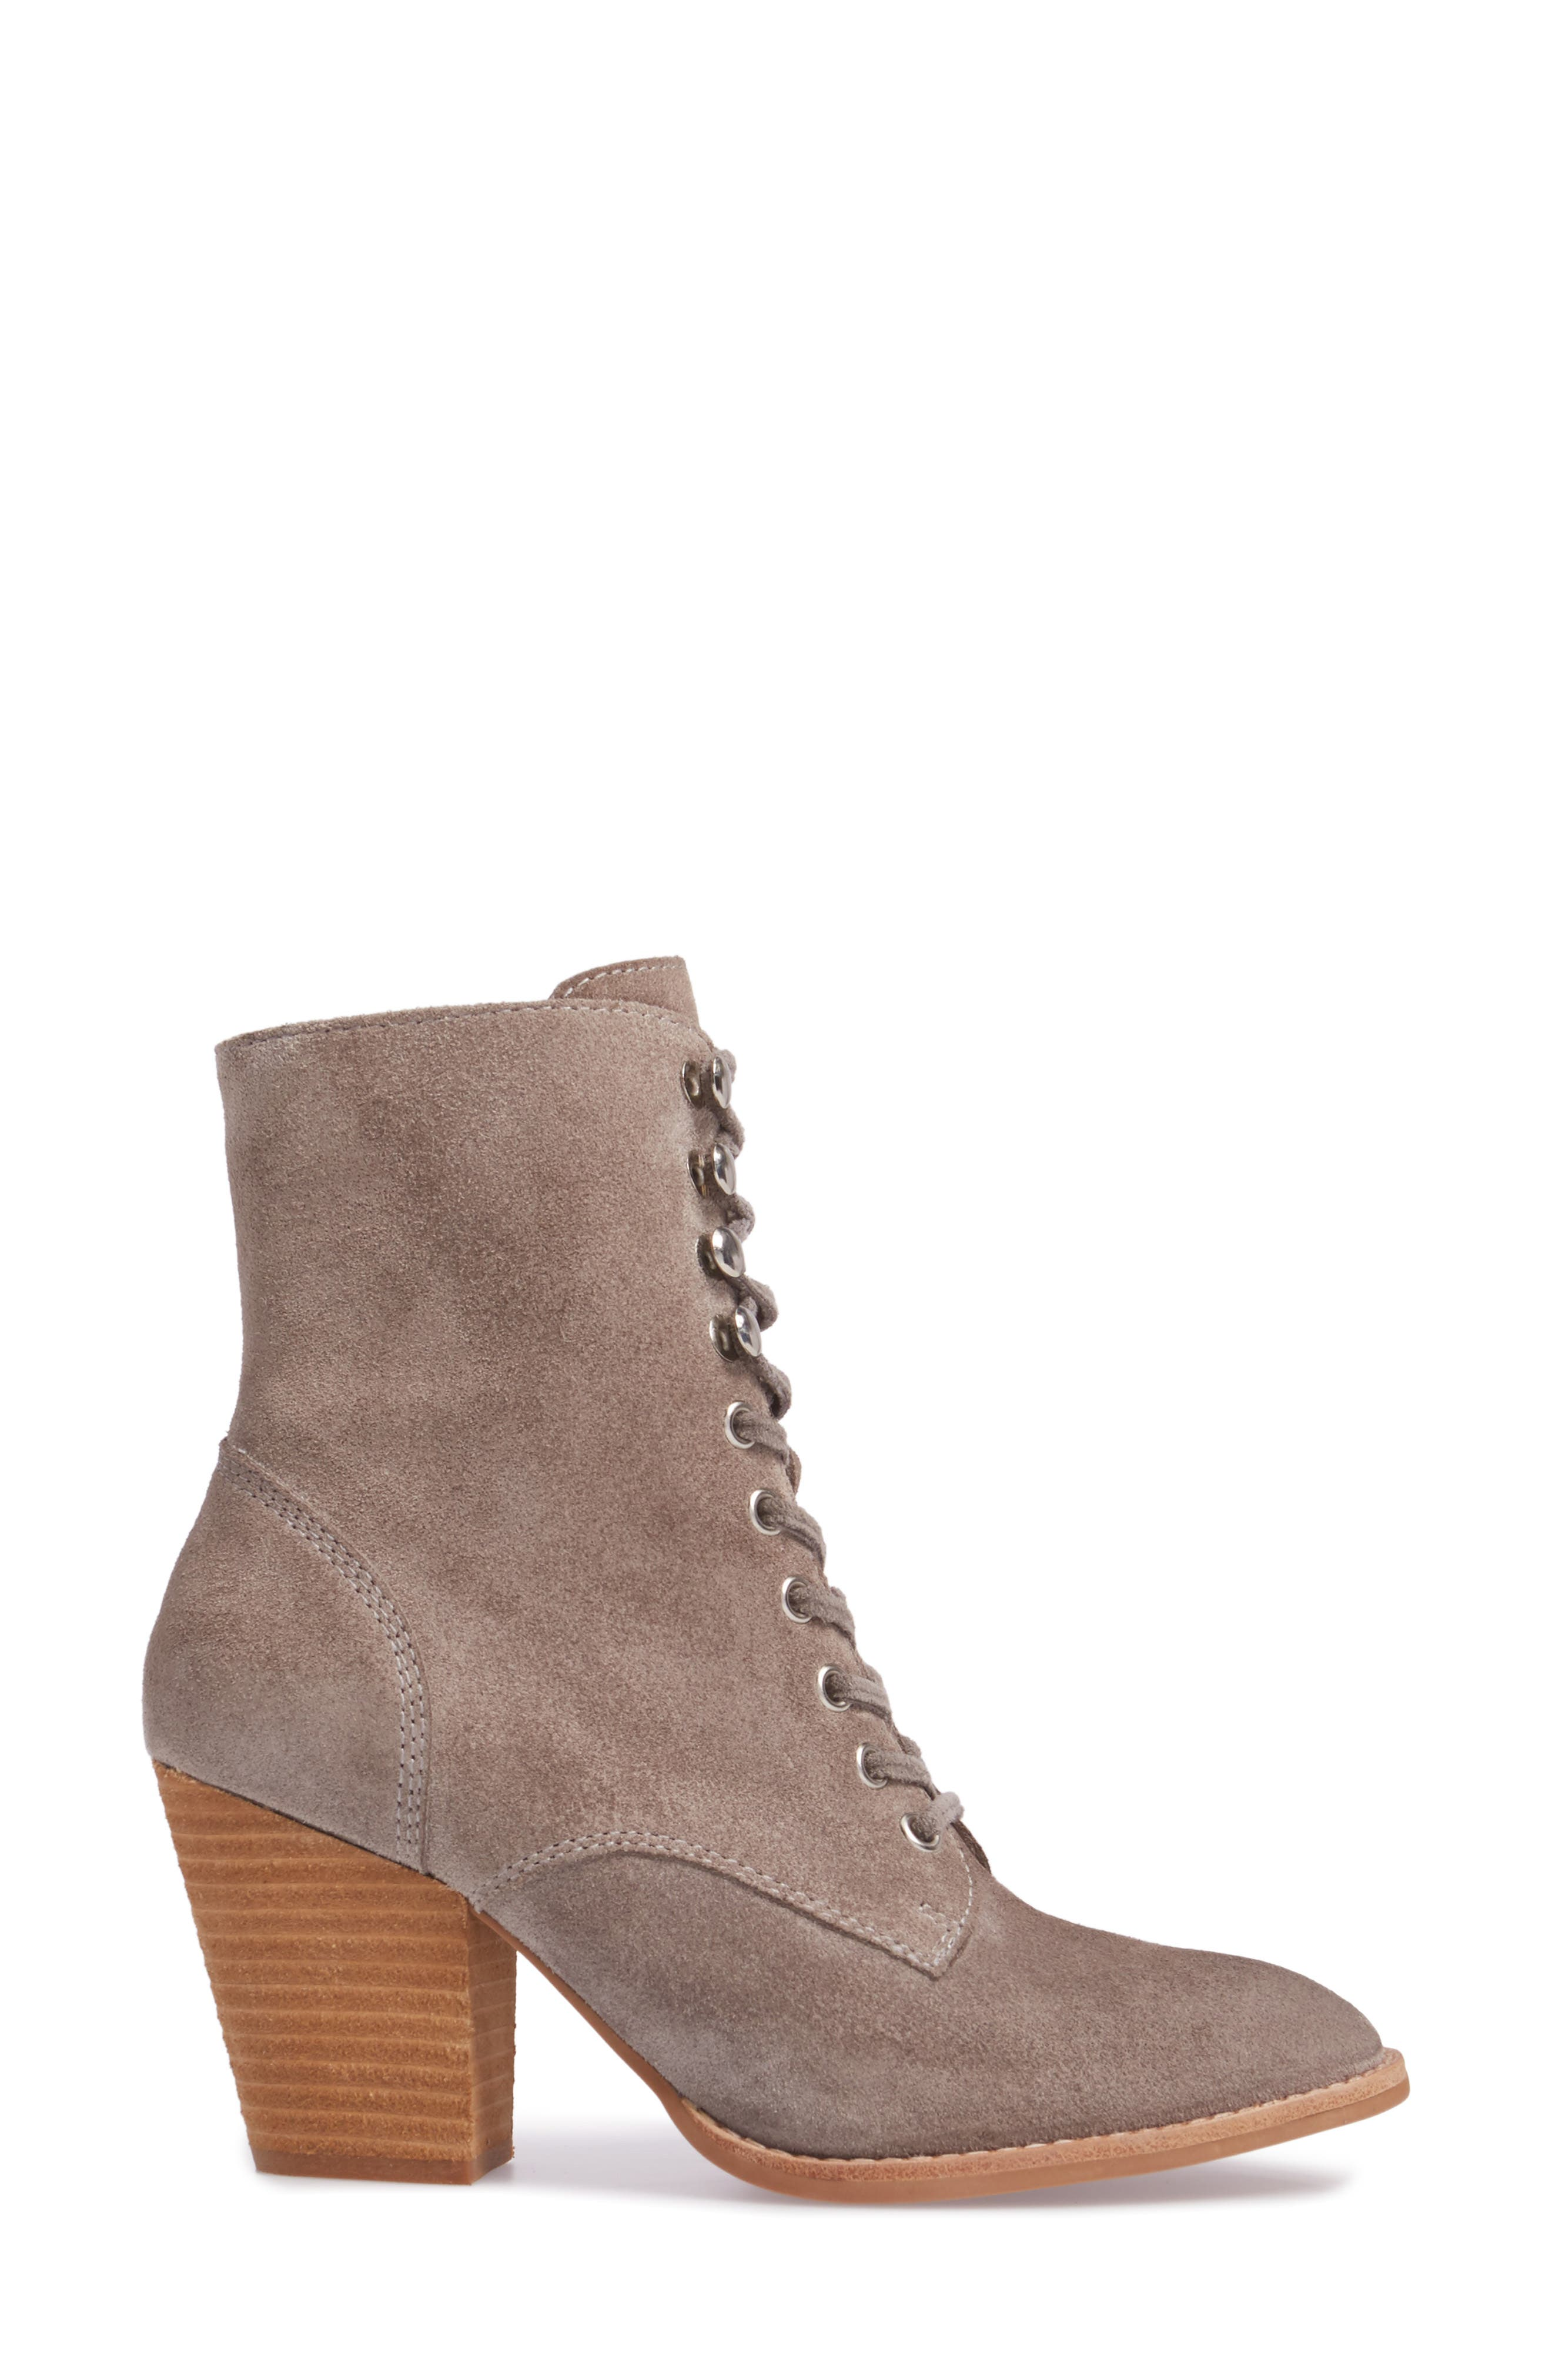 Elman Bootie,                             Alternate thumbnail 3, color,                             Taupe Suede